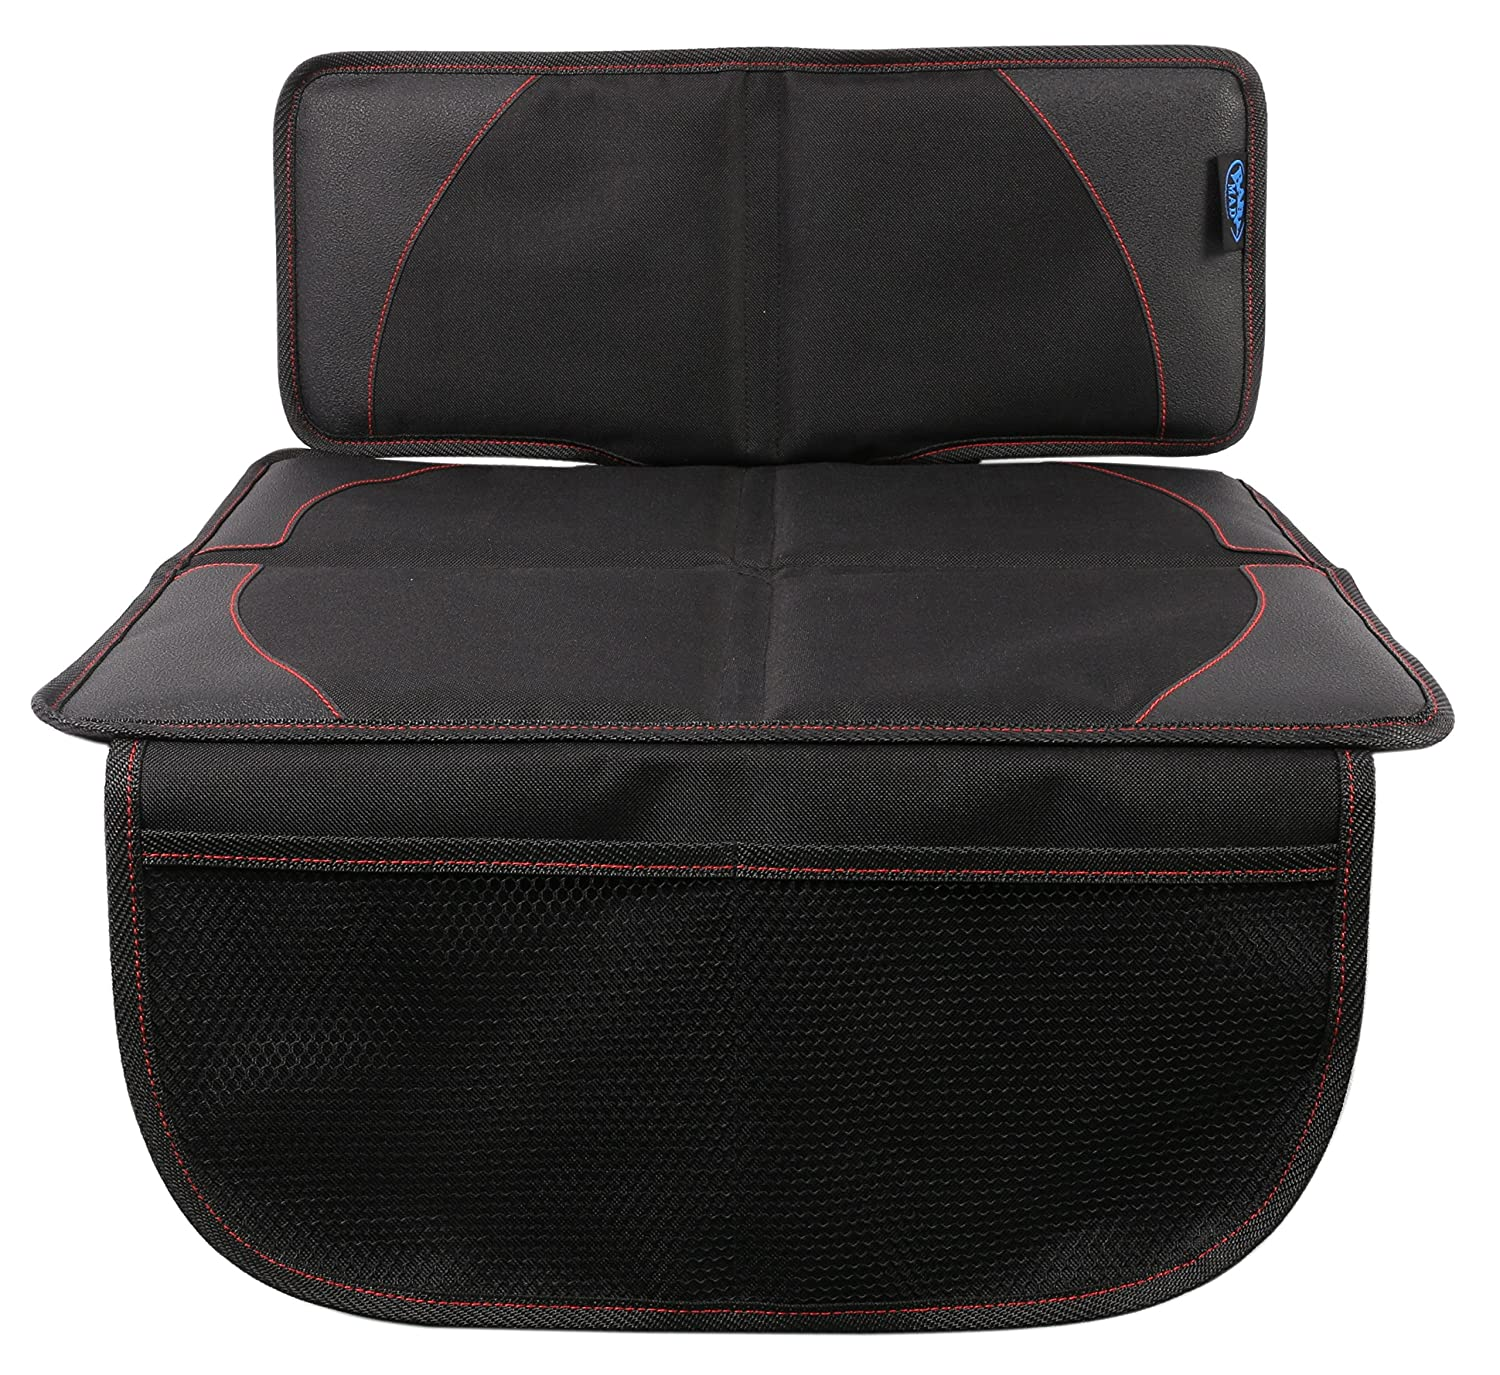 Low Car Seat Protector/Heavy Duty Protects Upholstery with Padded Cover/Organiser Pockets/Universal Size/Ideal for Baby & Toddler car Seats/Anti-Slip/ISOFIX Compatible - BabyMad® BM_CSP_HALF